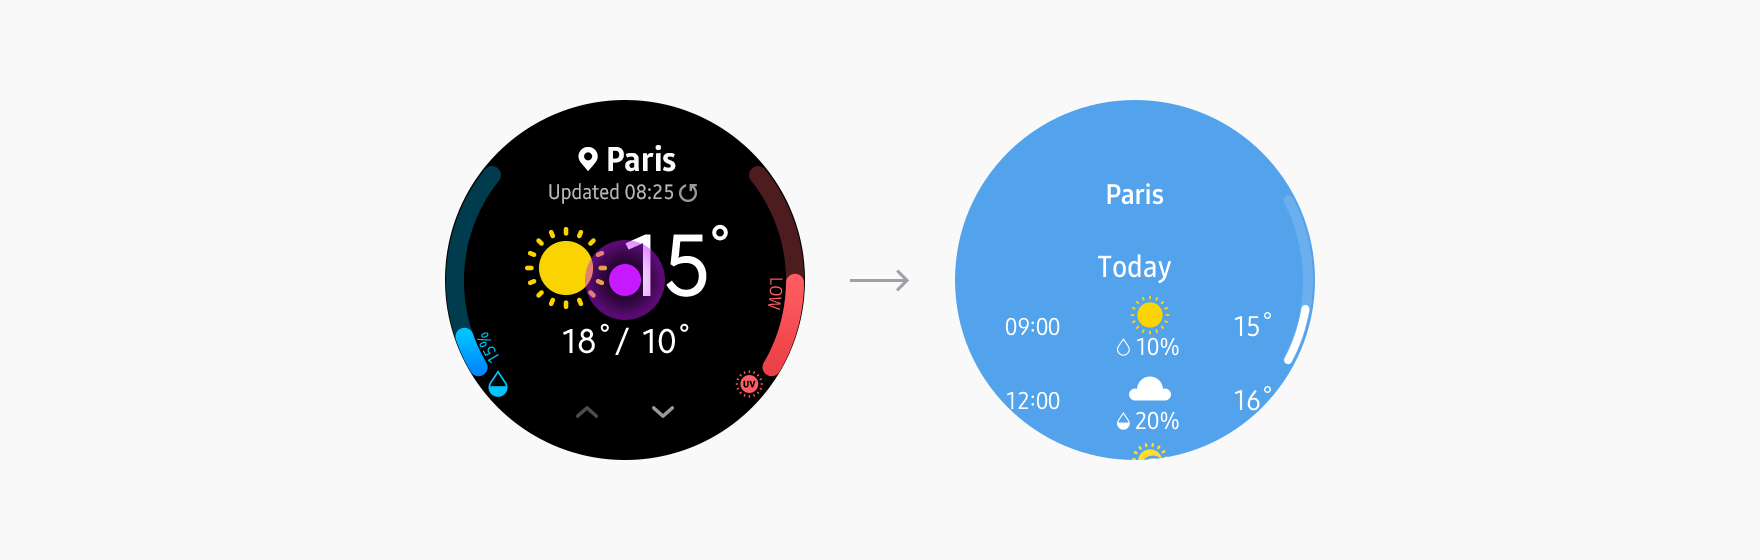 Weather widgets can show the weather for a chosen city and provide a direct route to more detailed info within the app.